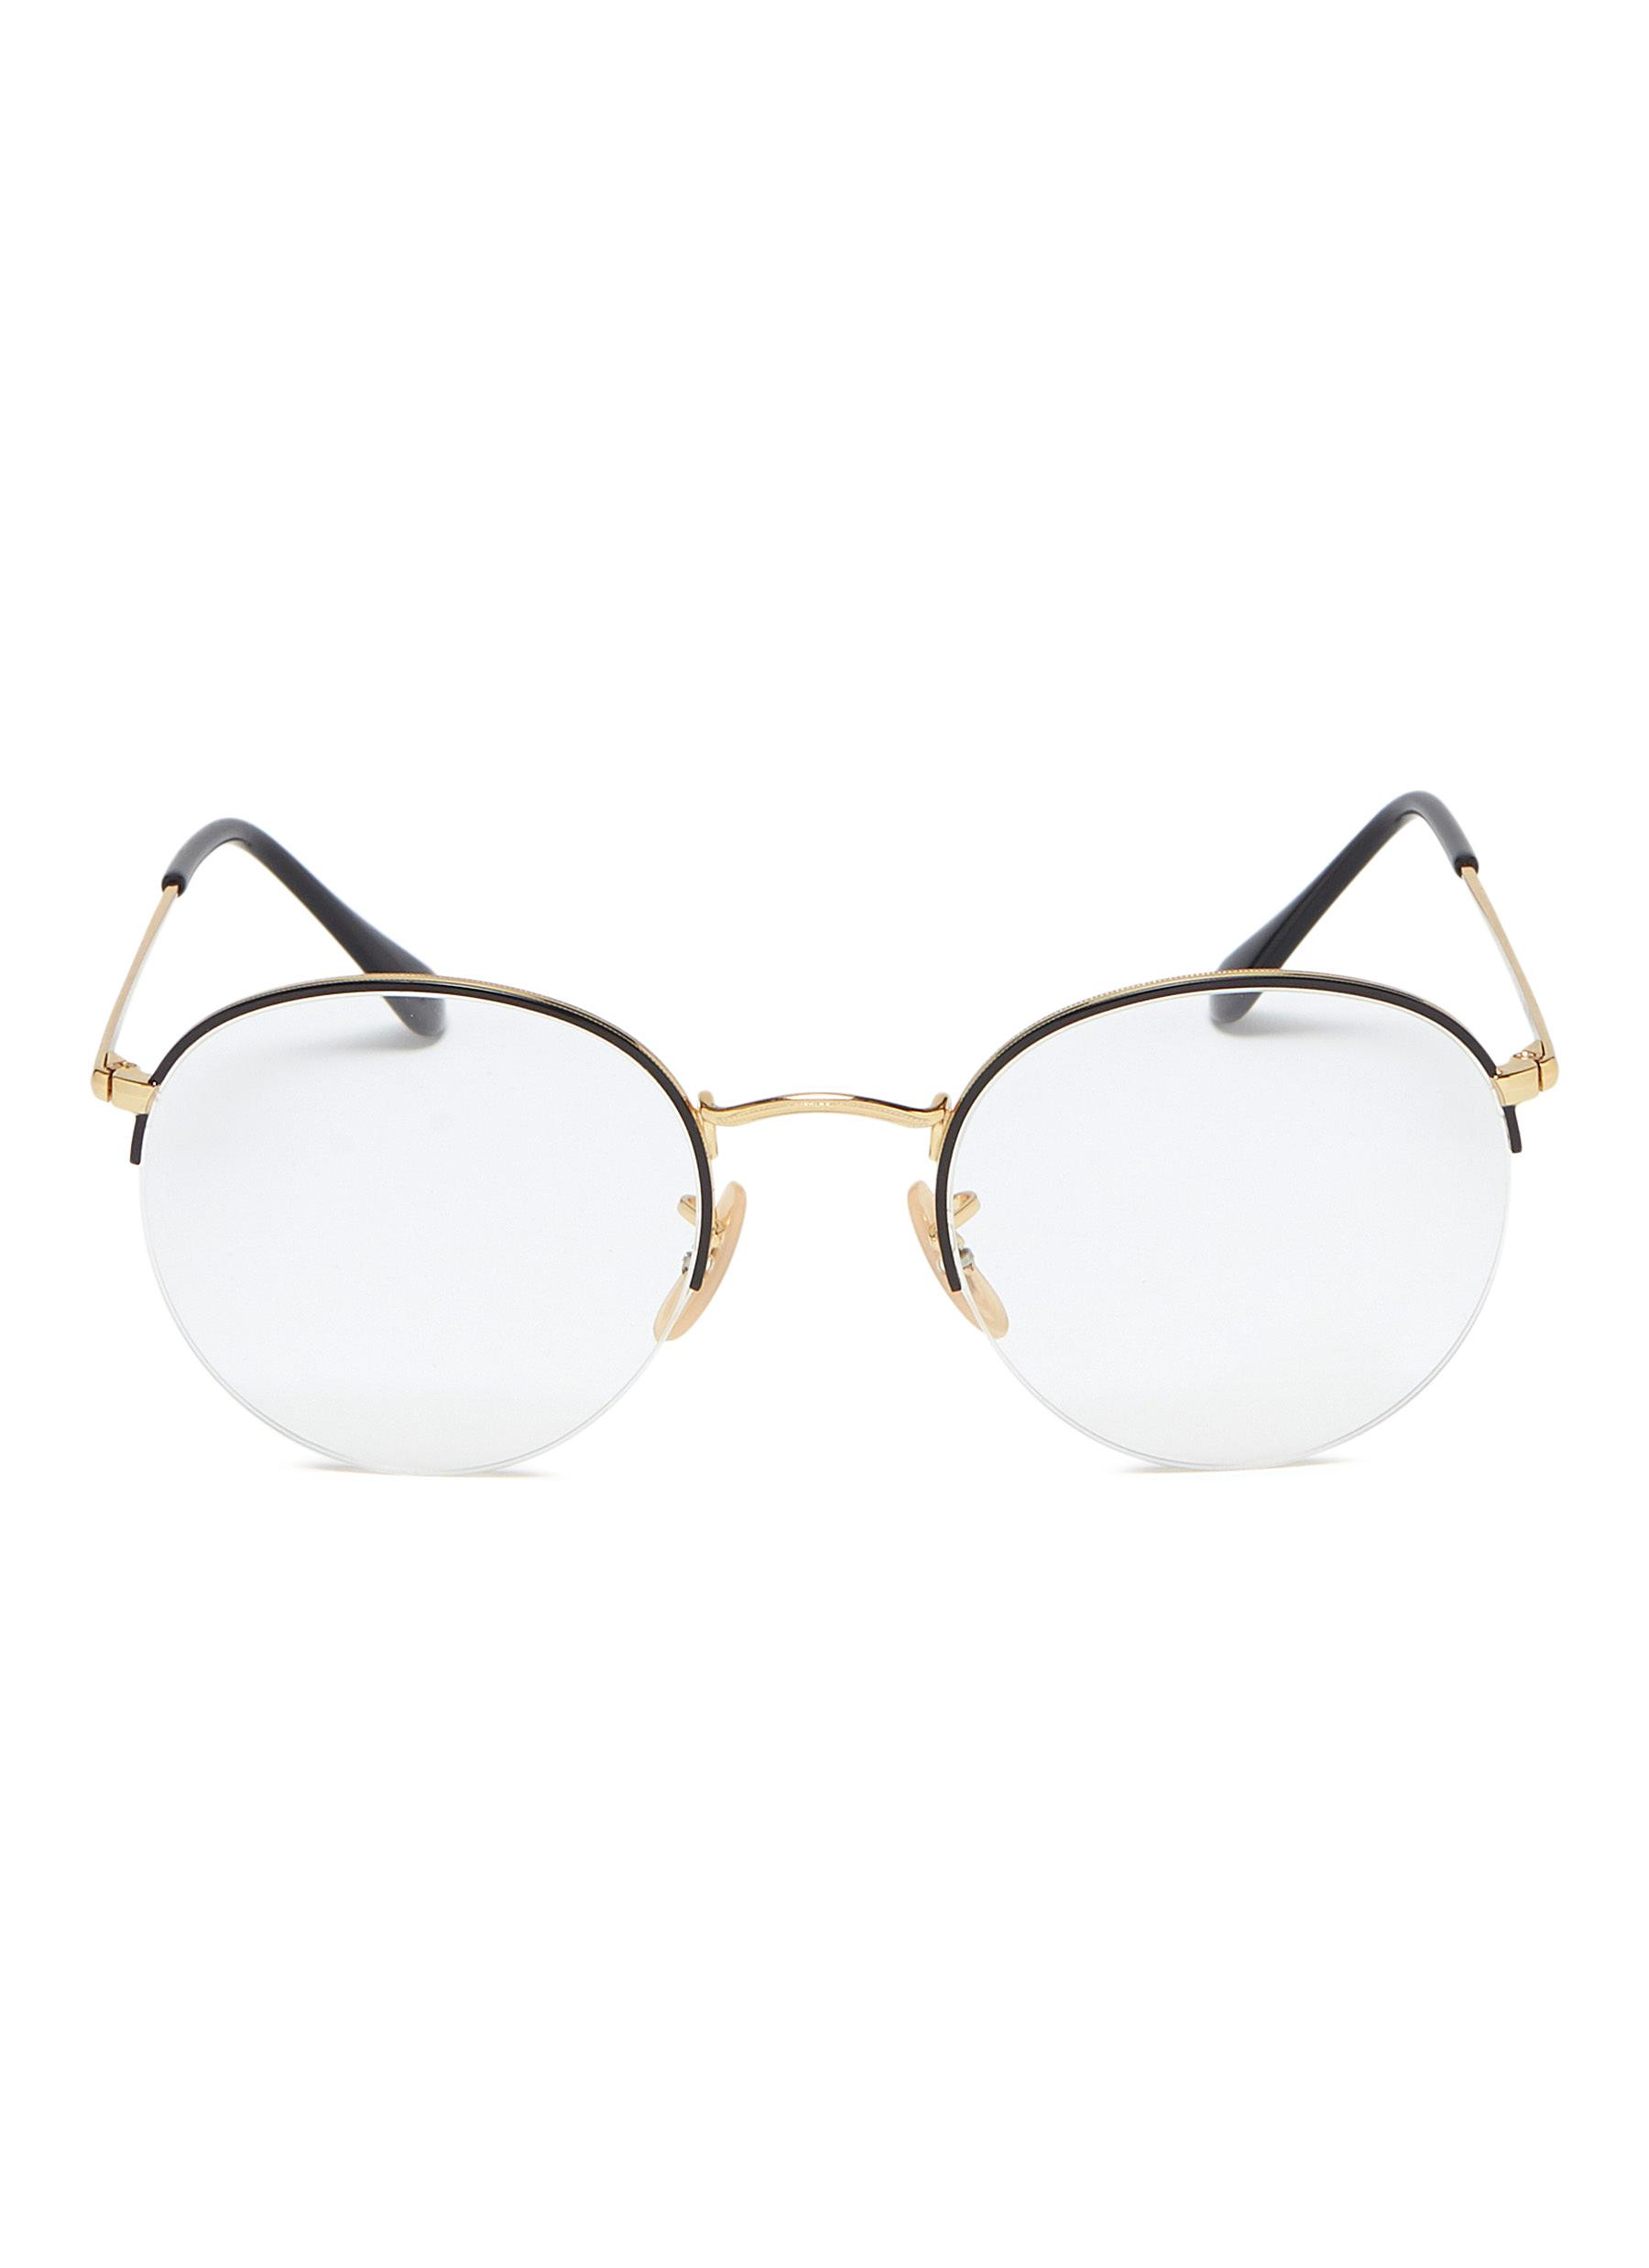 cc061bccc424f1 Ray-Ban.  Gaze  metal round optical glasses